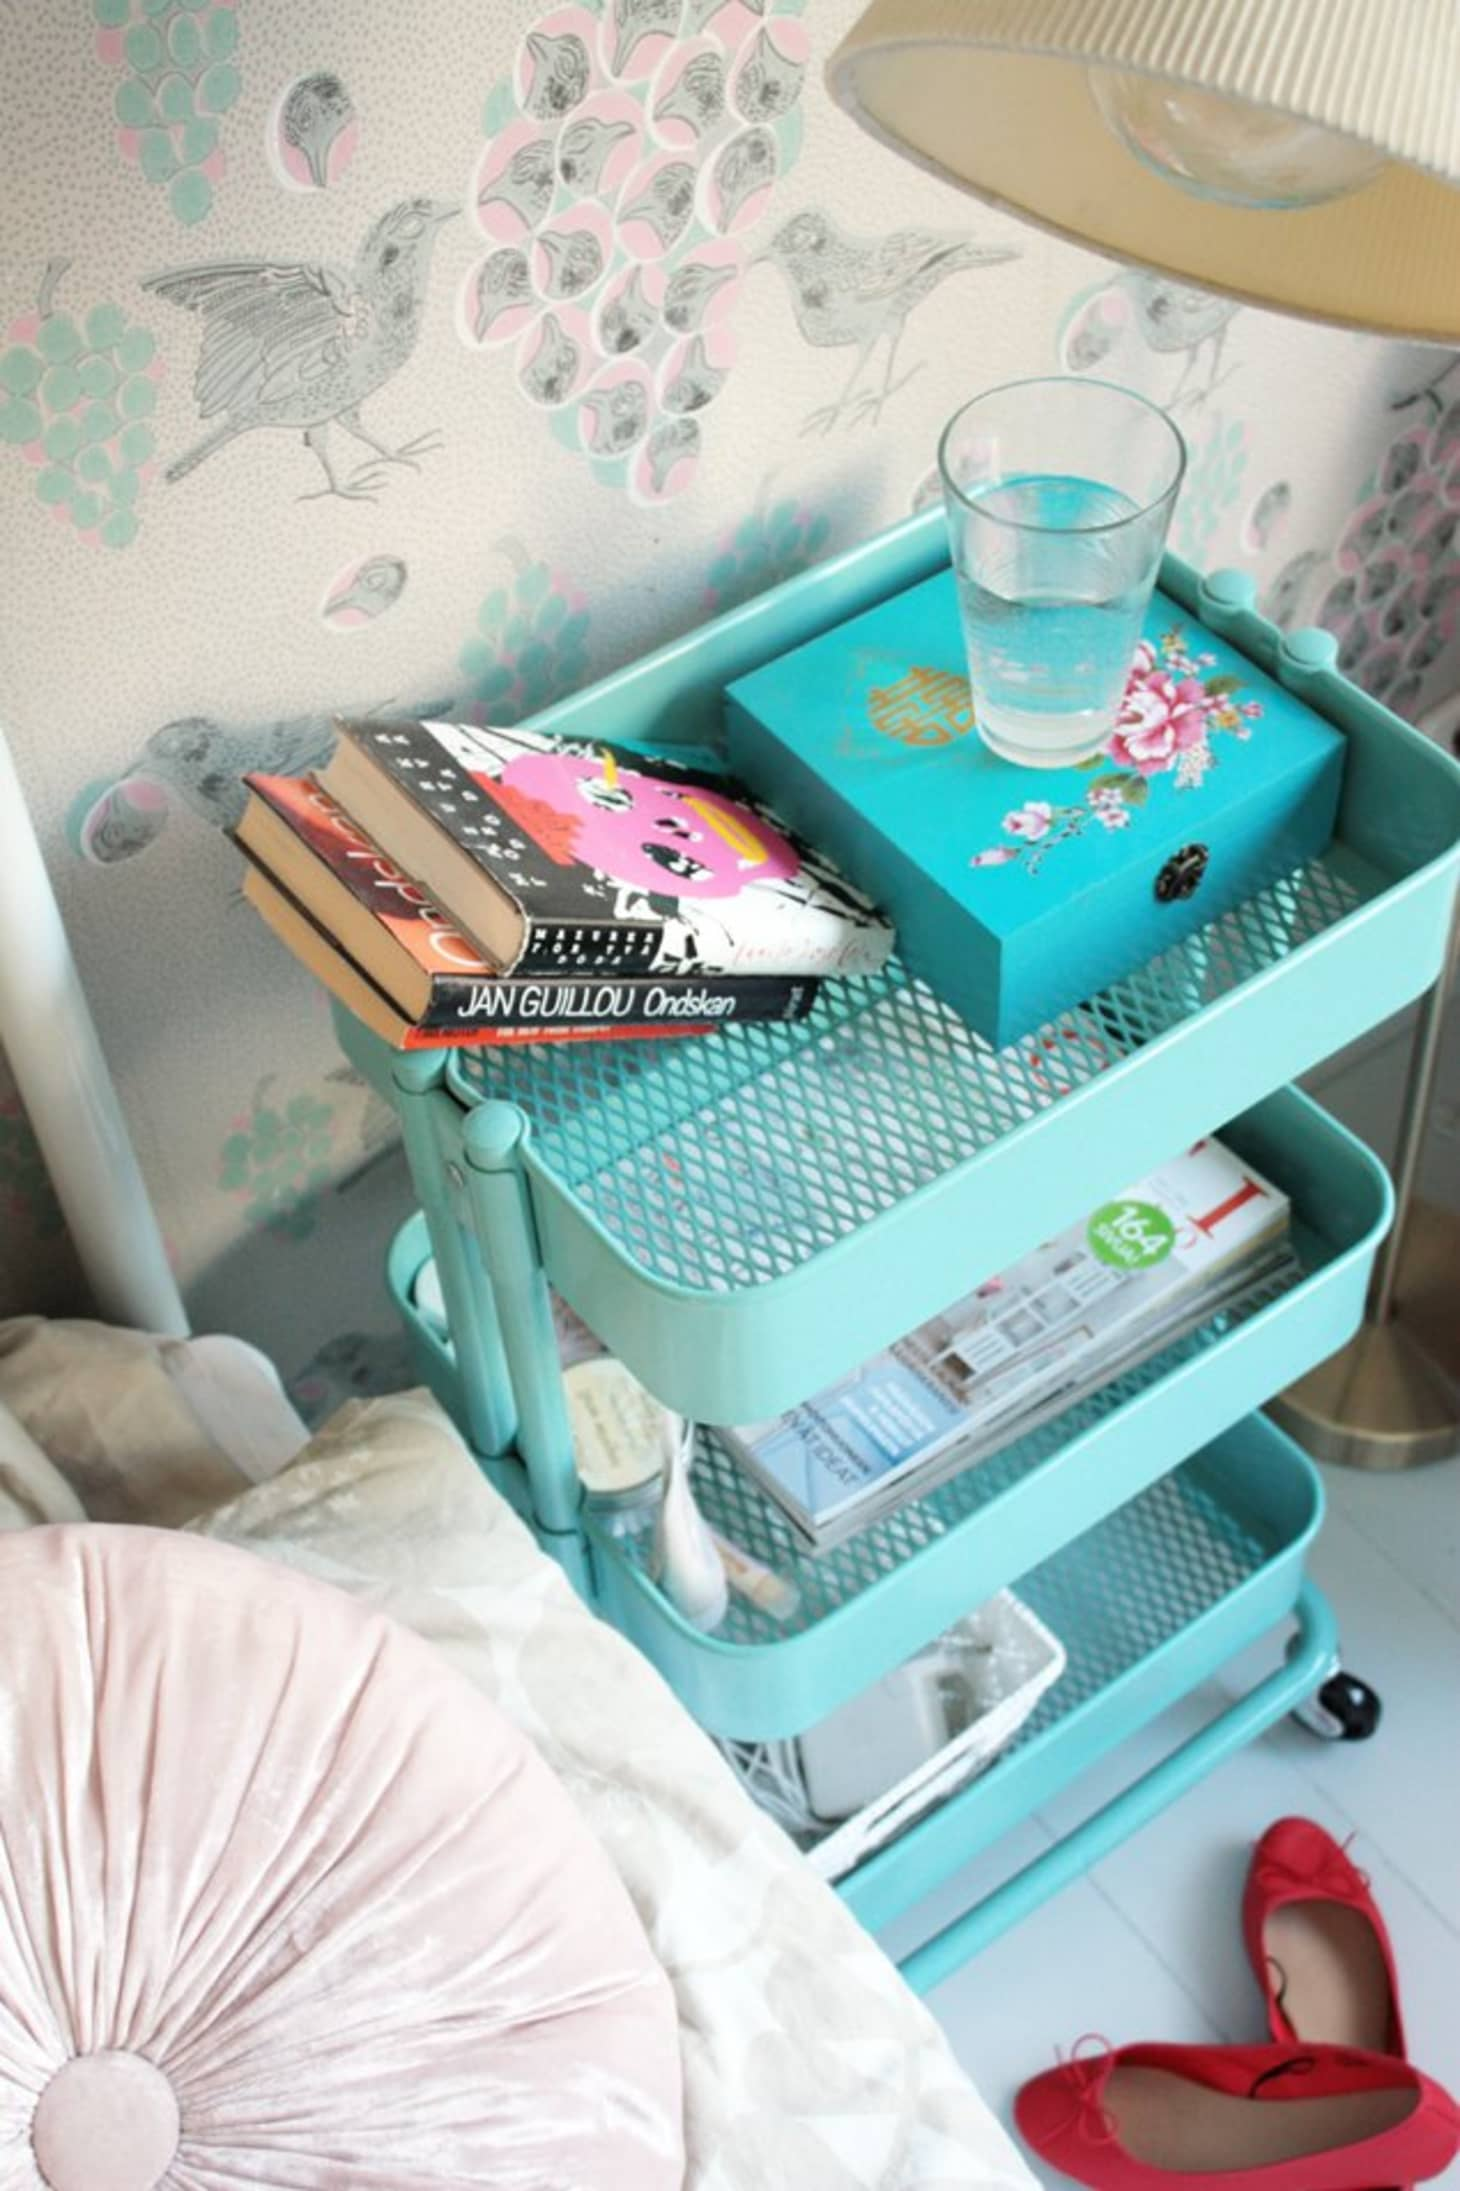 Dorm Room Decorating Ideas You Can DIY | Apartment Therapy